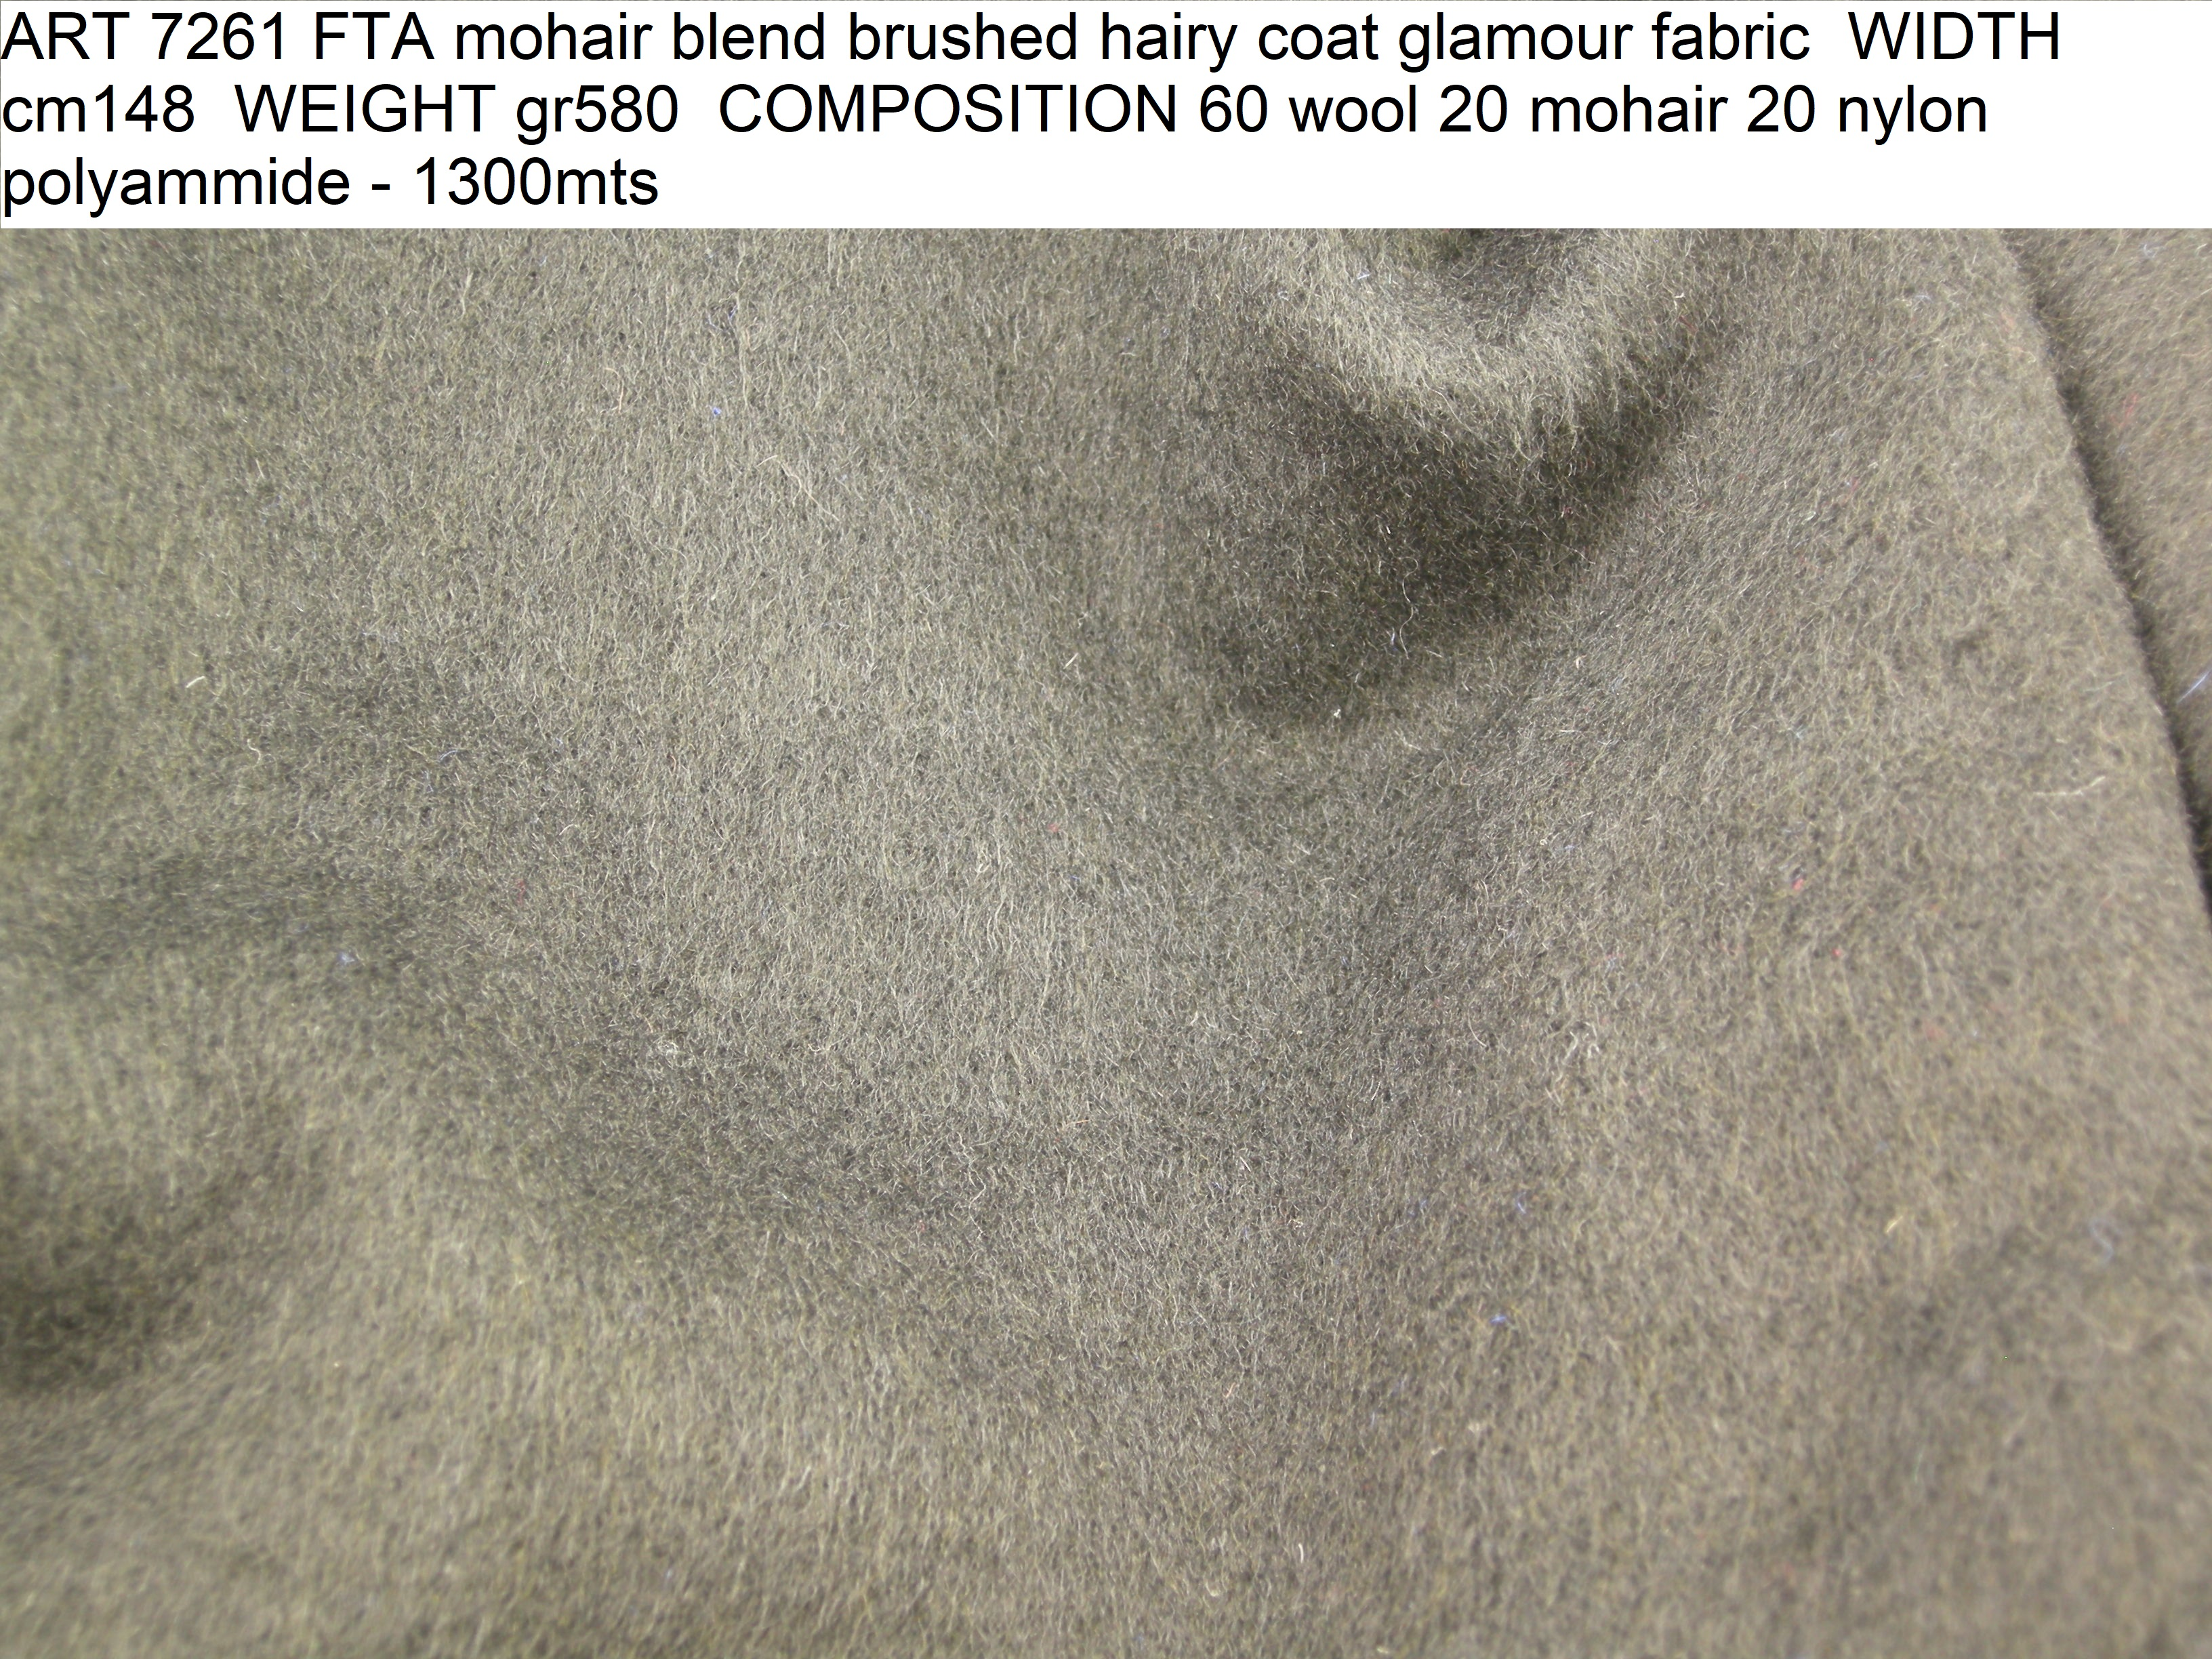 ART 7261 FTA mohair blend brushed hairy coat glamour fabric WIDTH cm148 WEIGHT gr580 COMPOSITION 60 wool 20 mohair 20 nylon polyammide - 1300mts